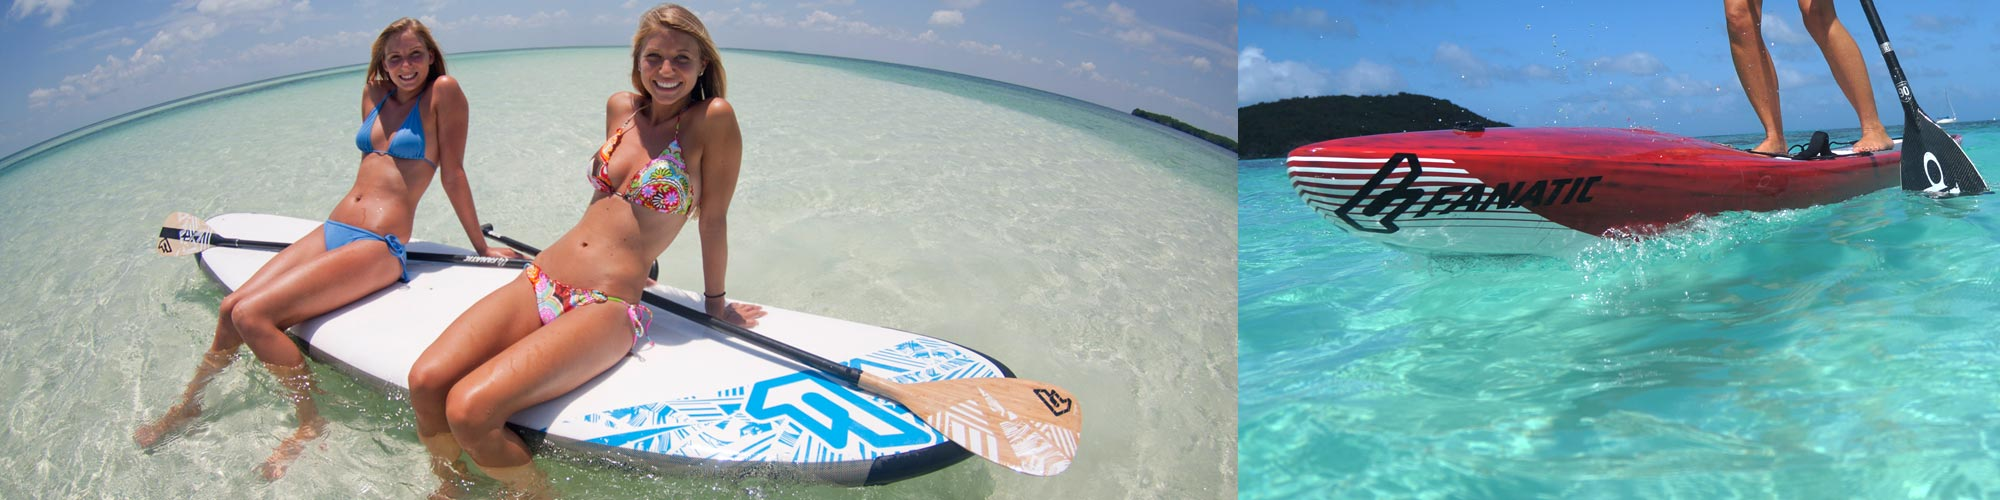 Paddleboard Rental on St.John, USVI